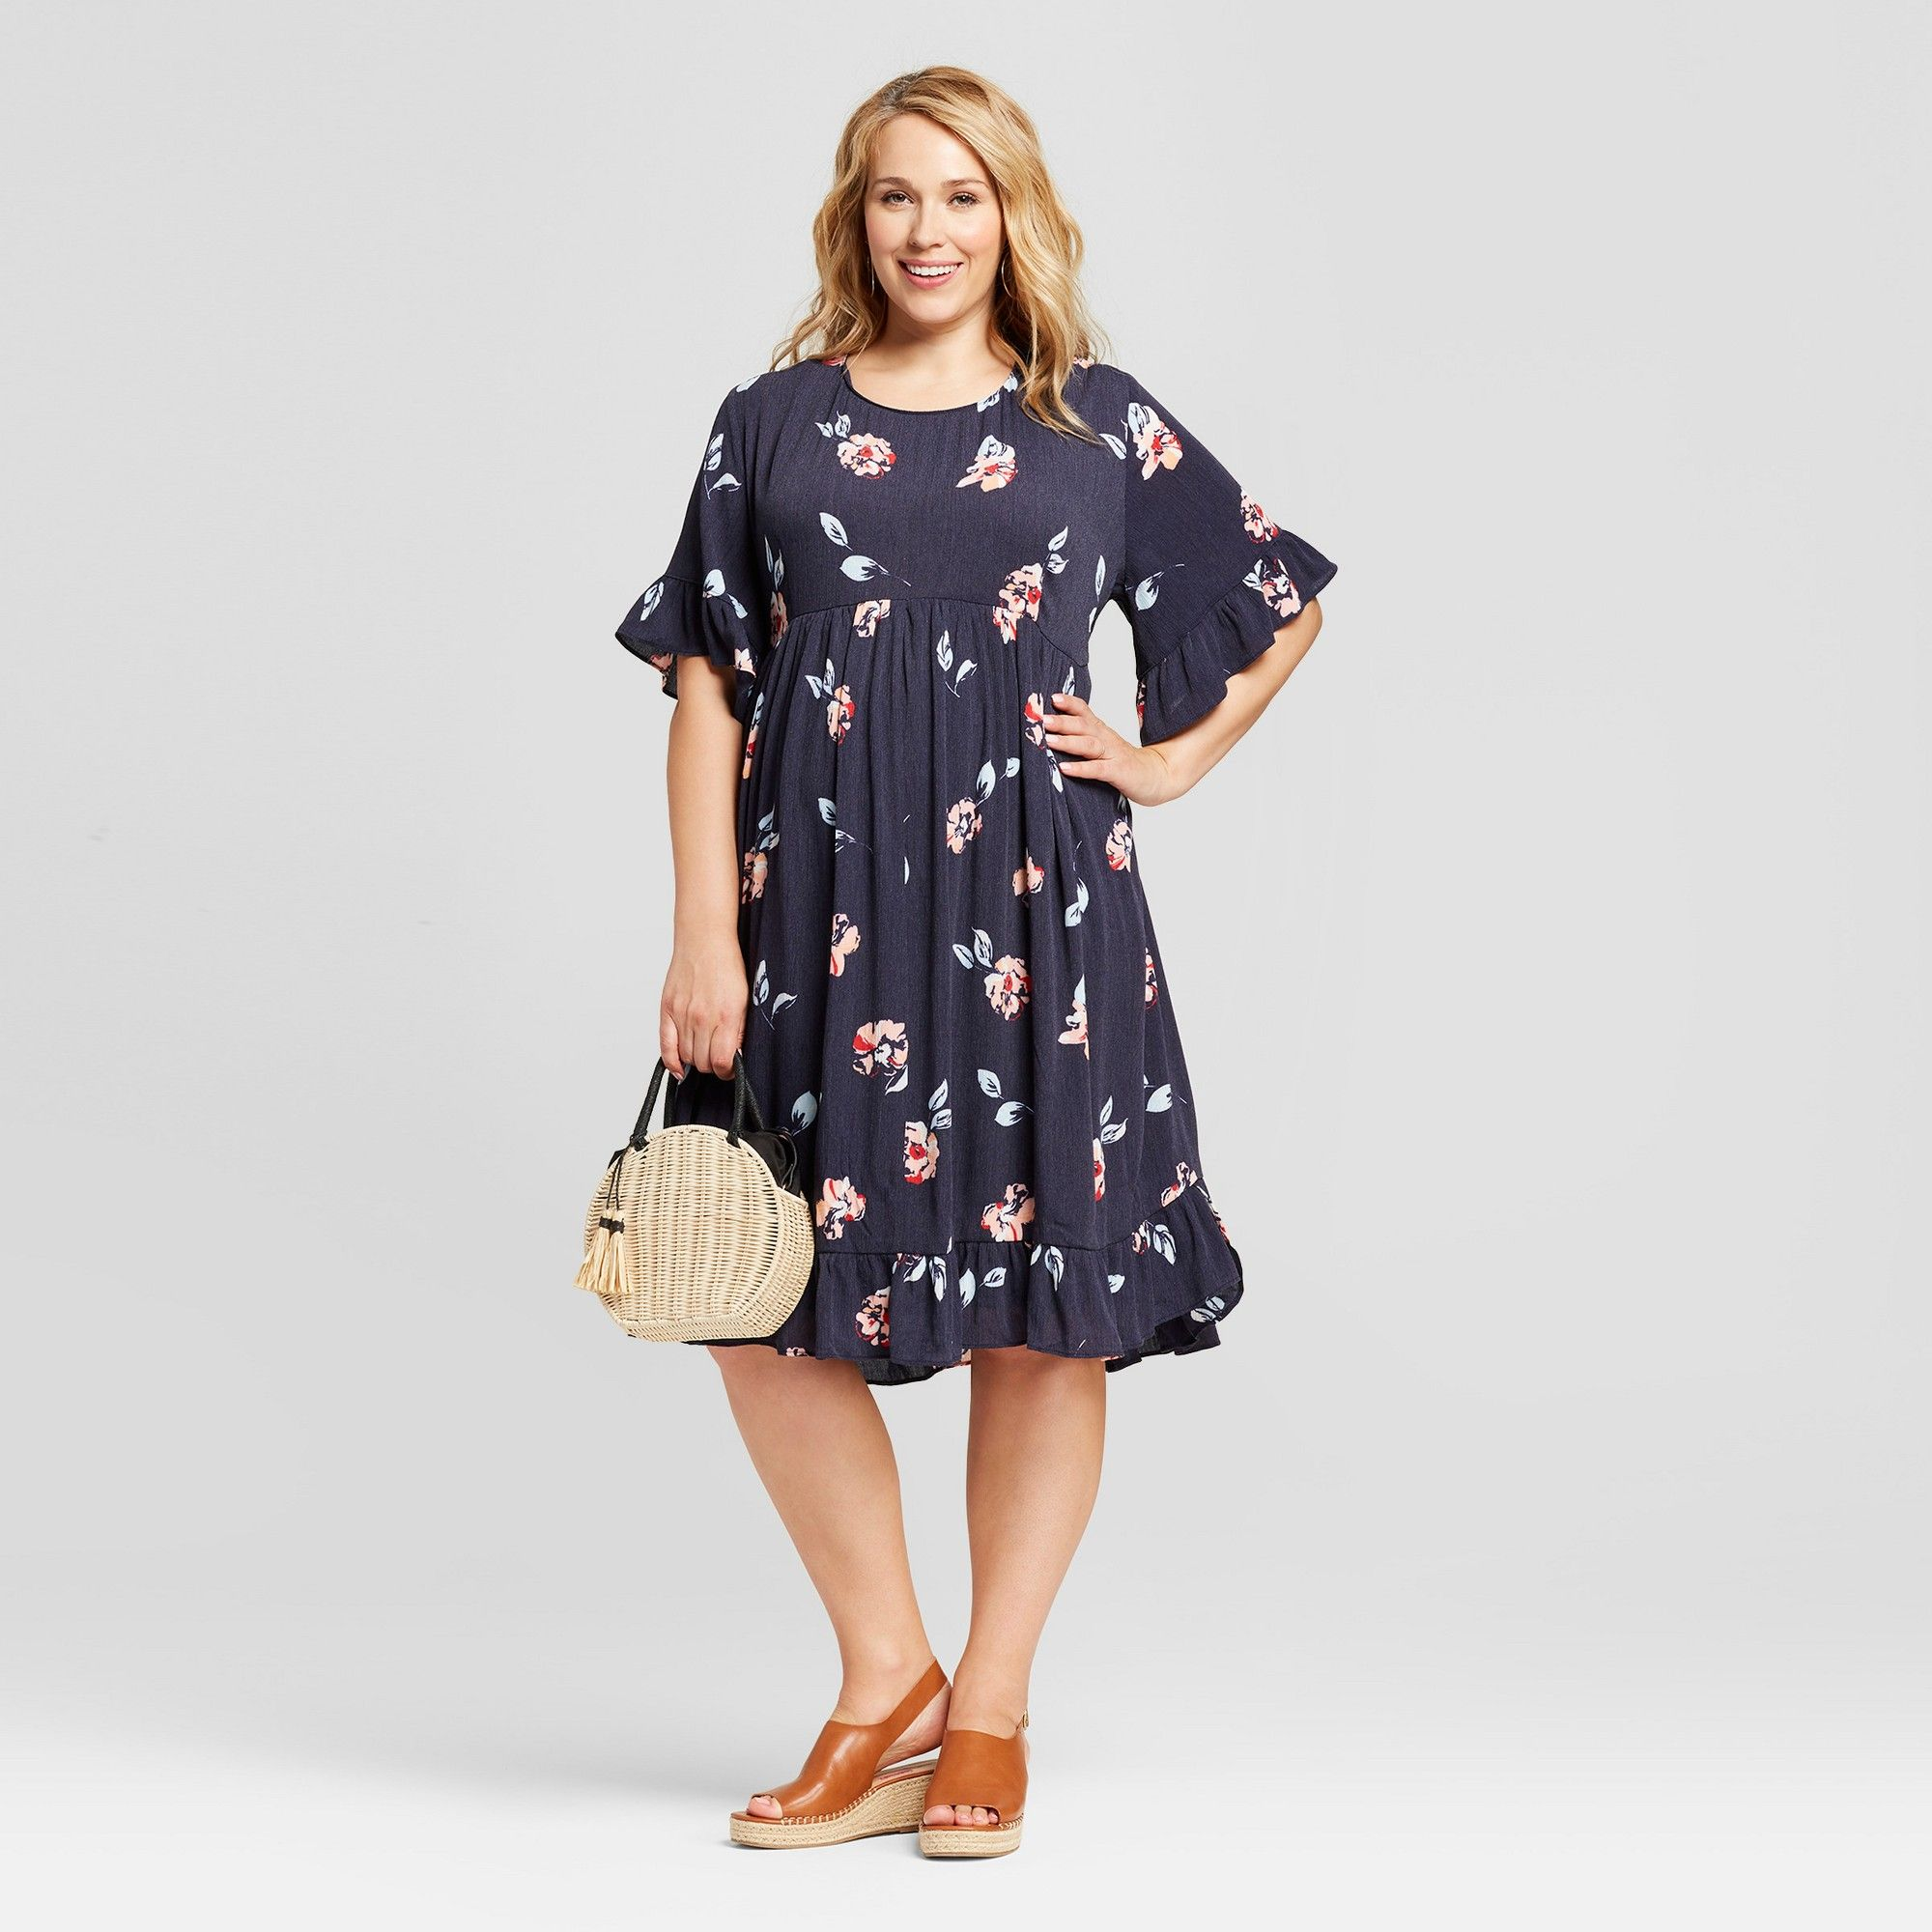 433623204c12 Maternity Plus Size Floral Ruffle Sleeve Woven Dress - Isabel Maternity by  Ingrid & Isabel Navy 2X, Women's, Blue